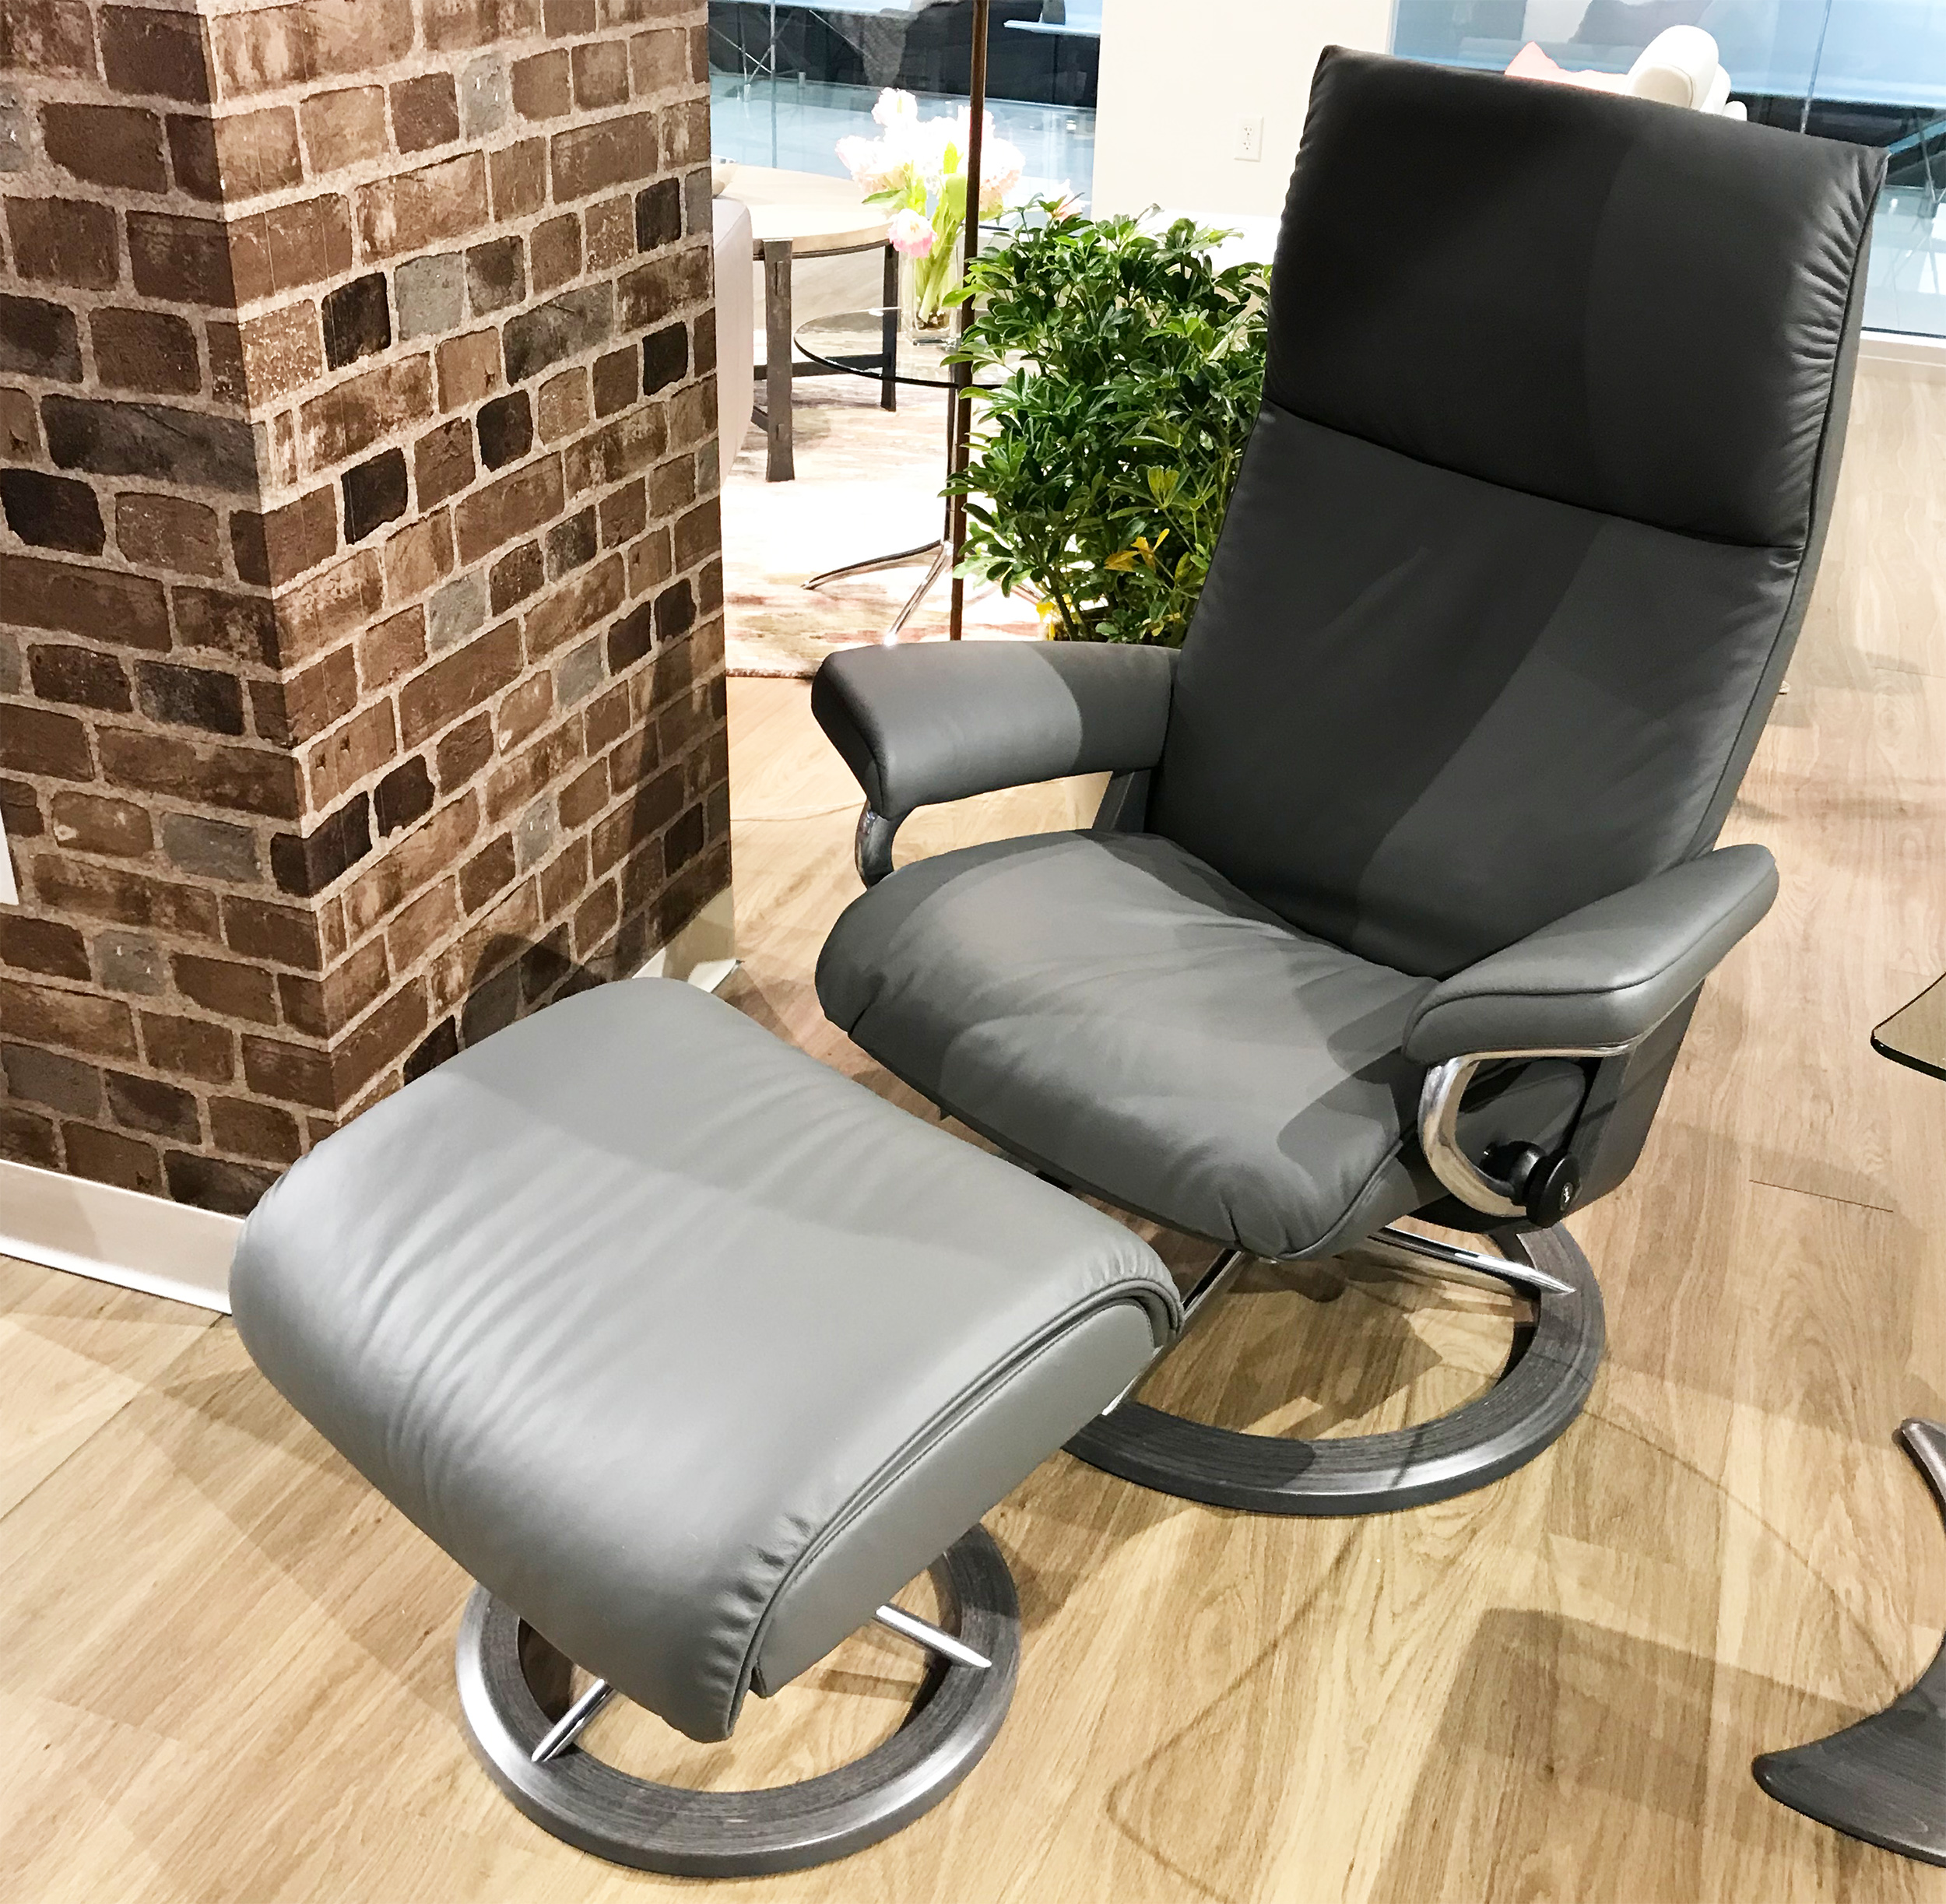 Leather Recliner Chair With Ottoman Stressless Aura Signature Batick Grey Leather Recliner Chair And Ottoman By Ekornes